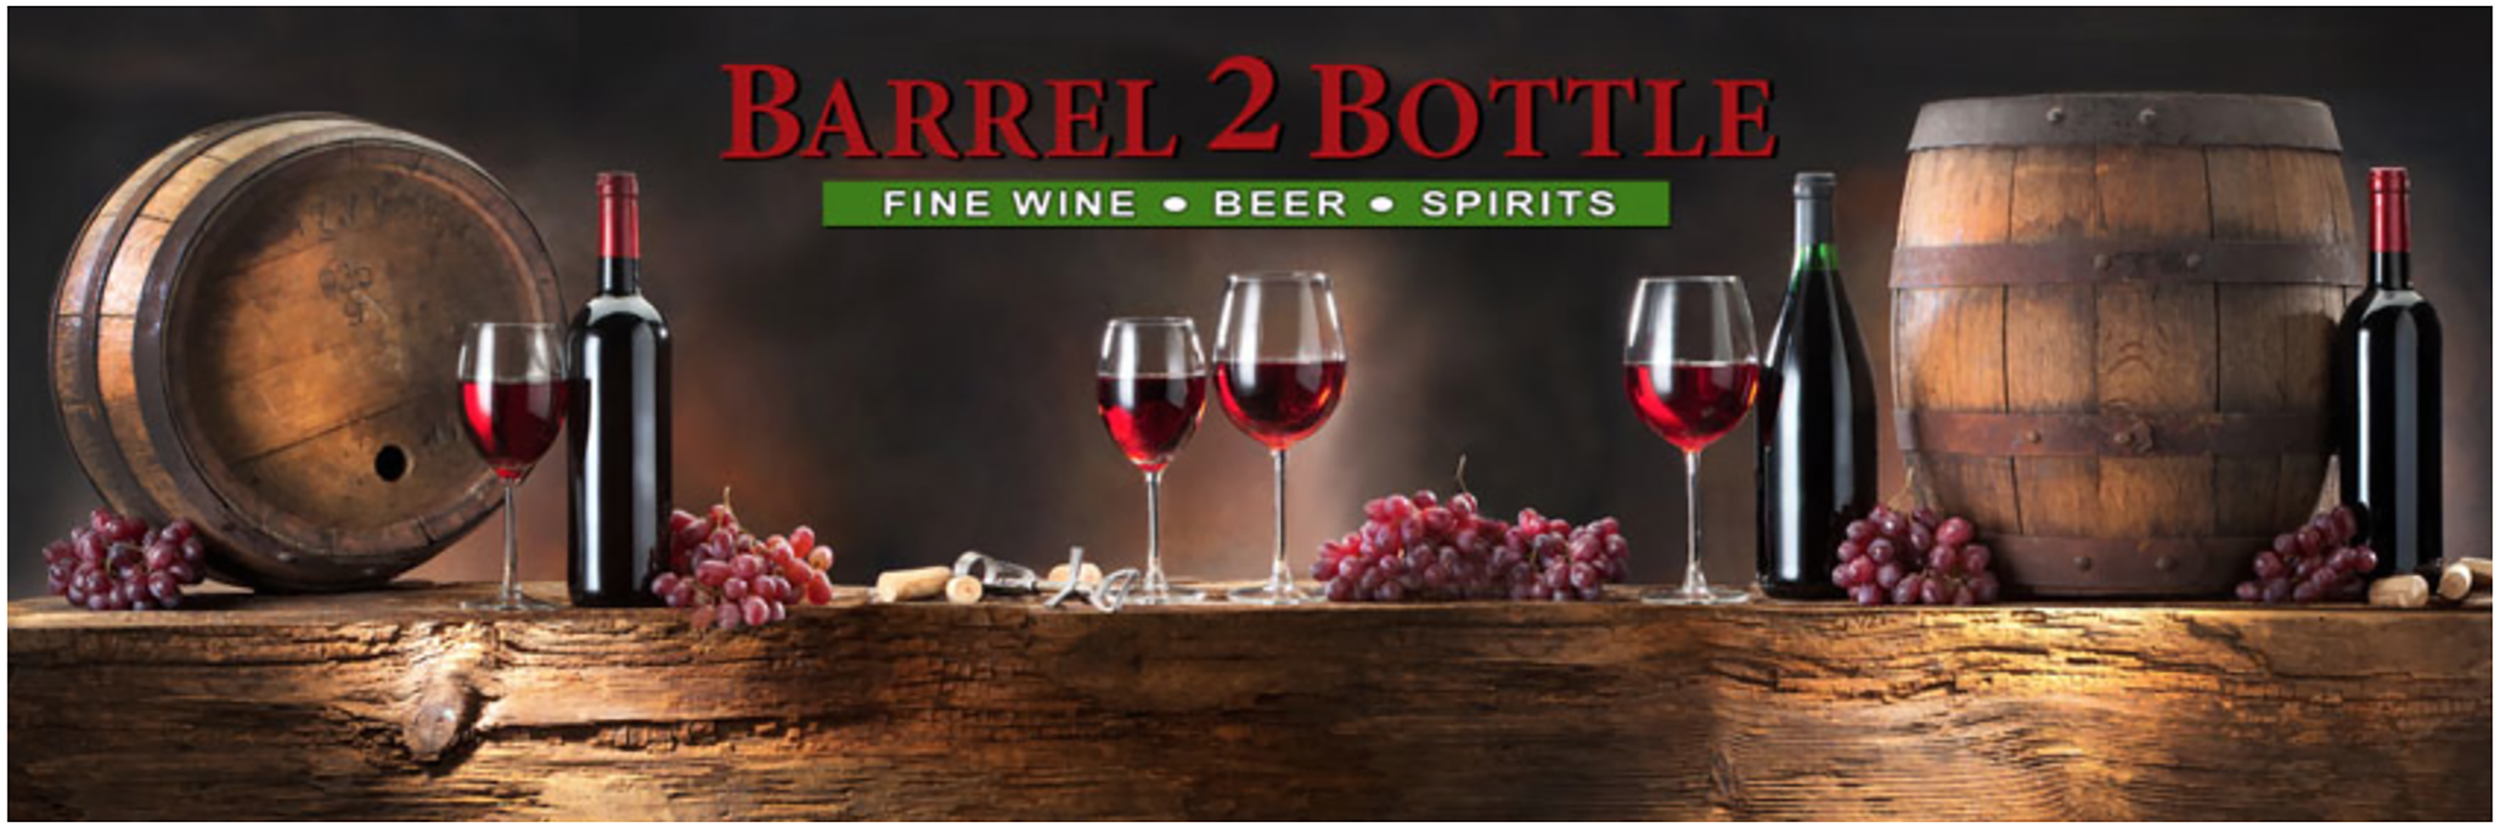 Barrel2BottleLogo.png